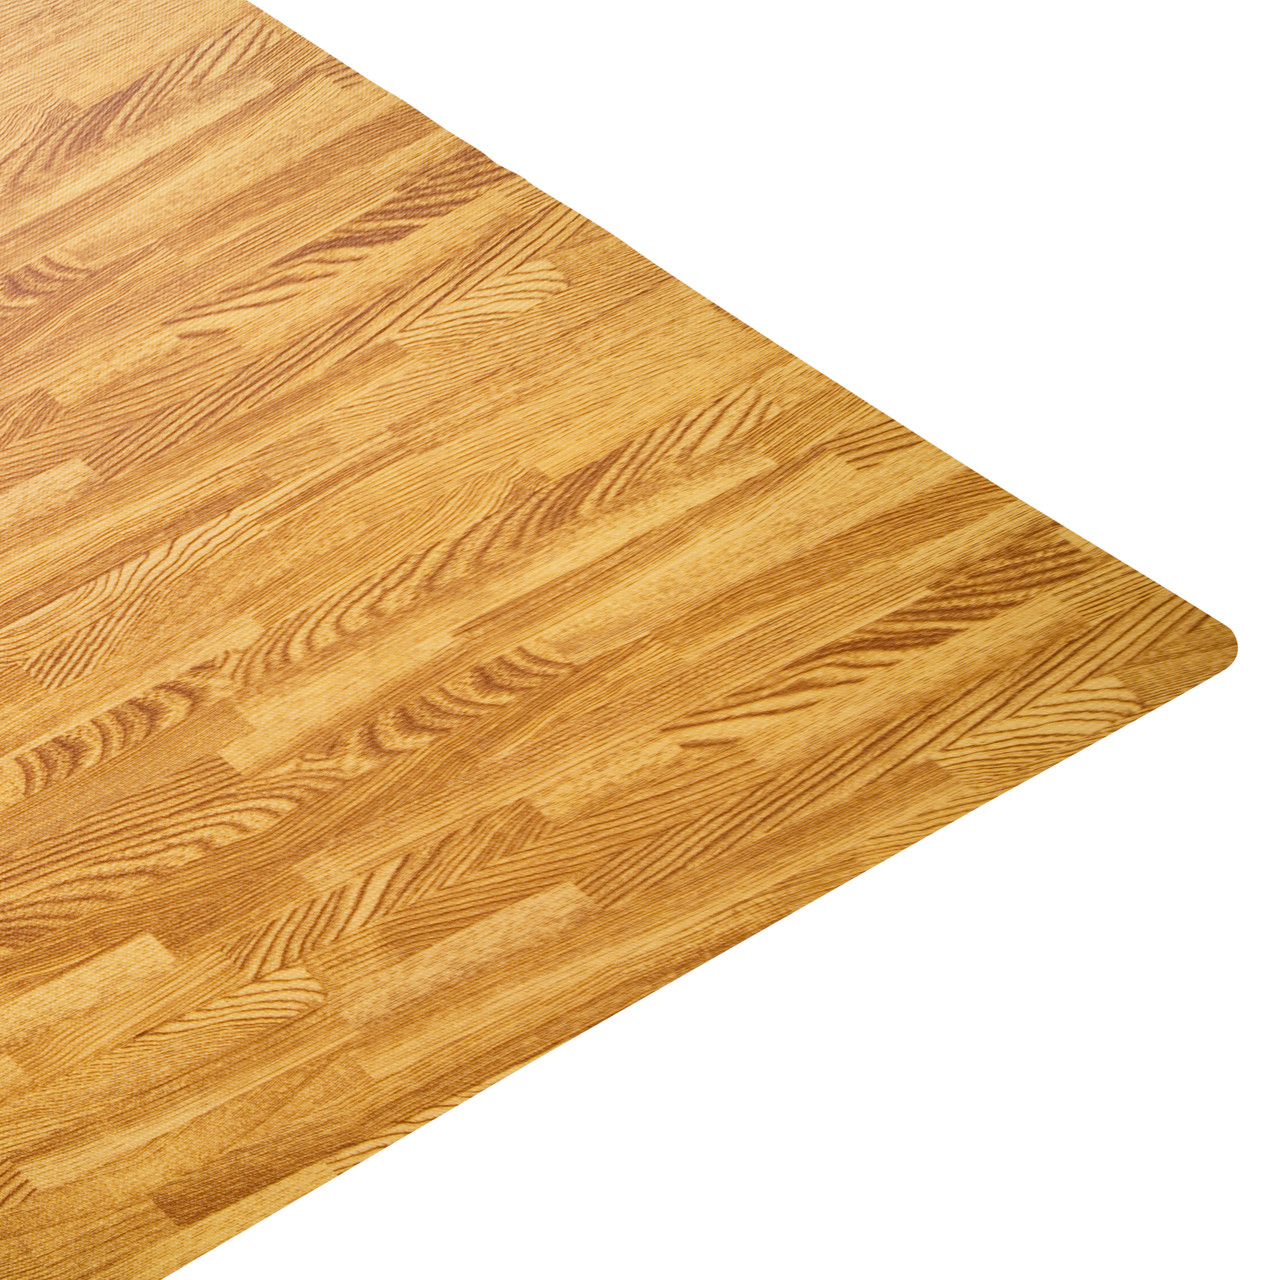 Cap Multi Use Mat With Wood Style Pattern Mt 46937ew